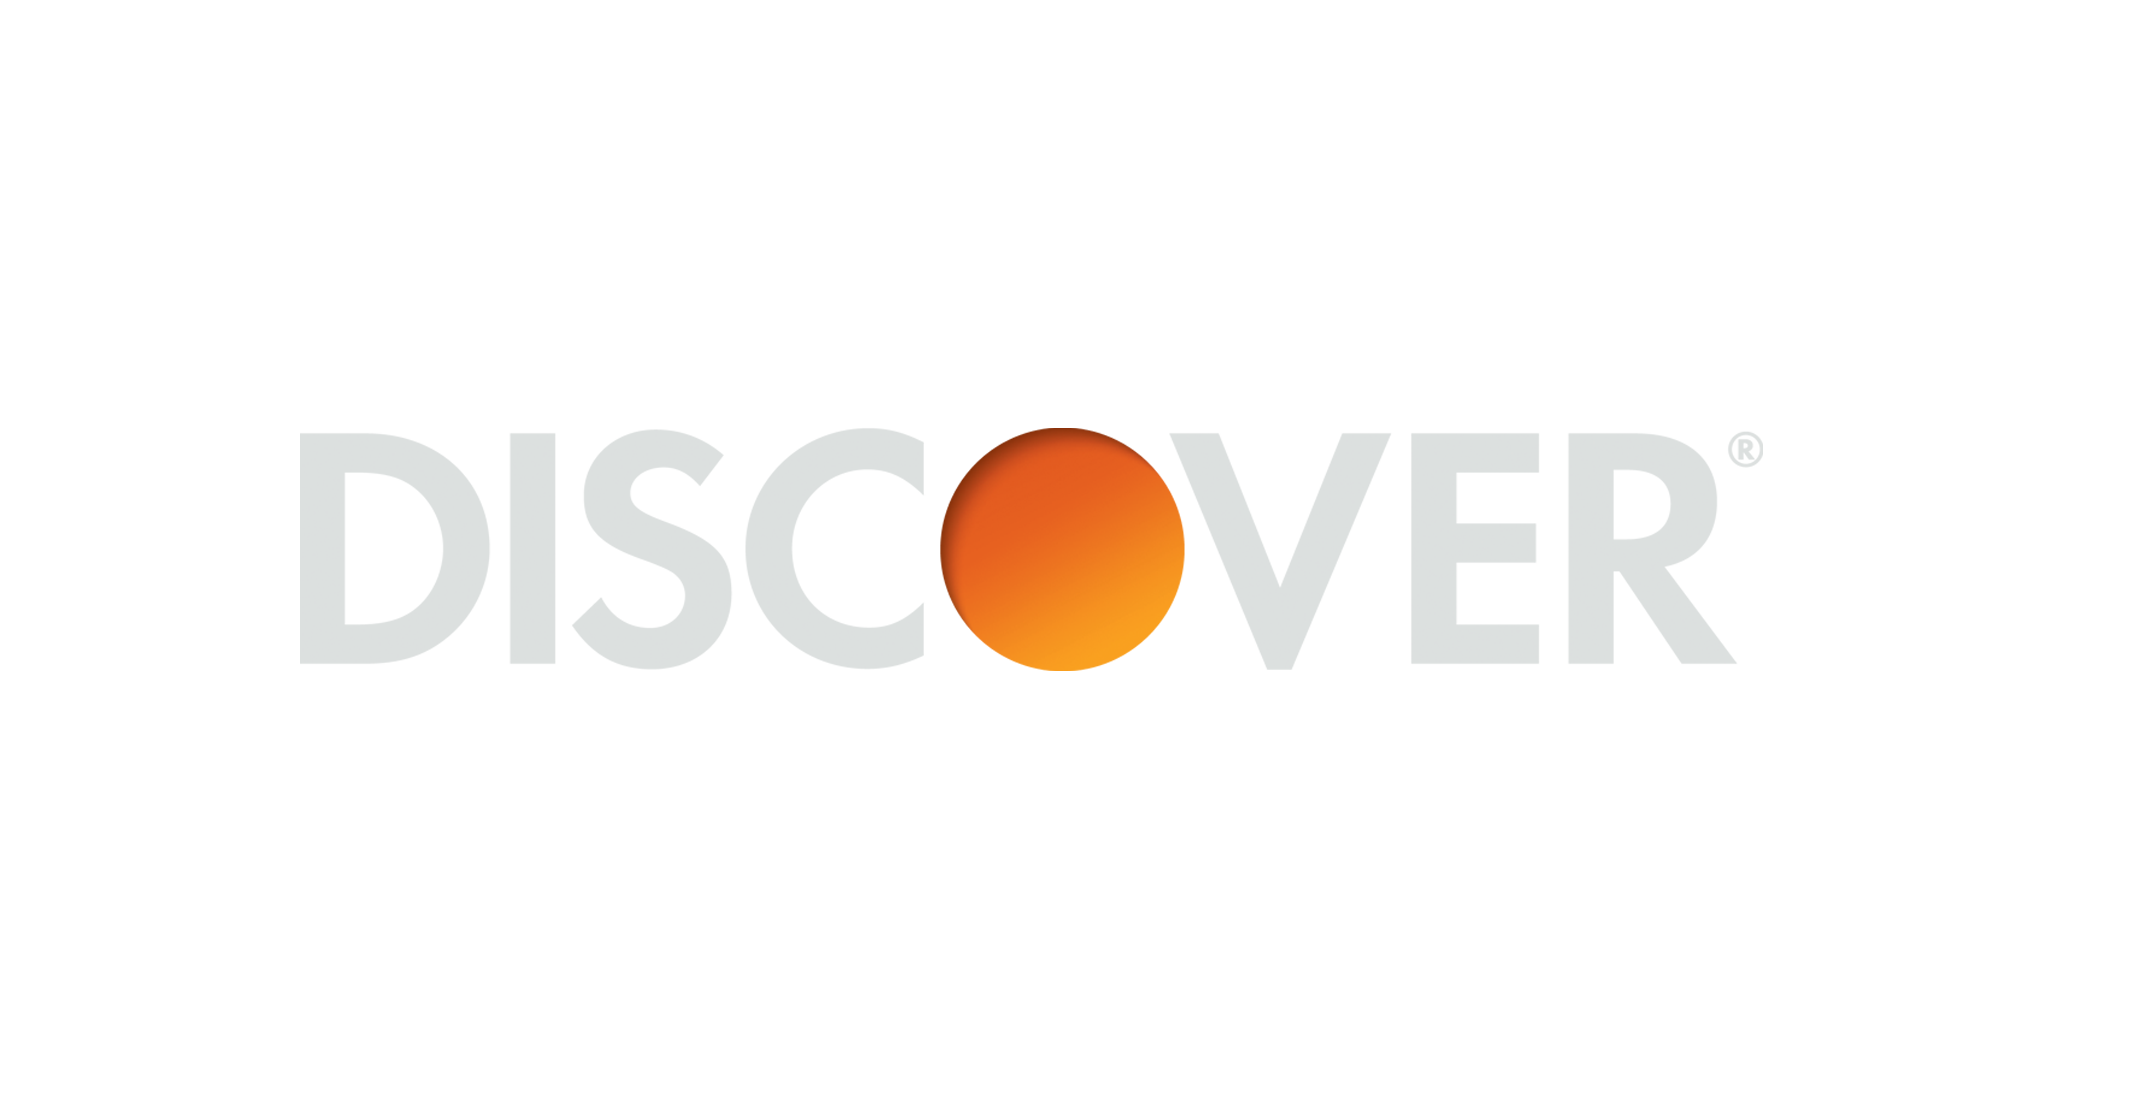 Discover_white.png